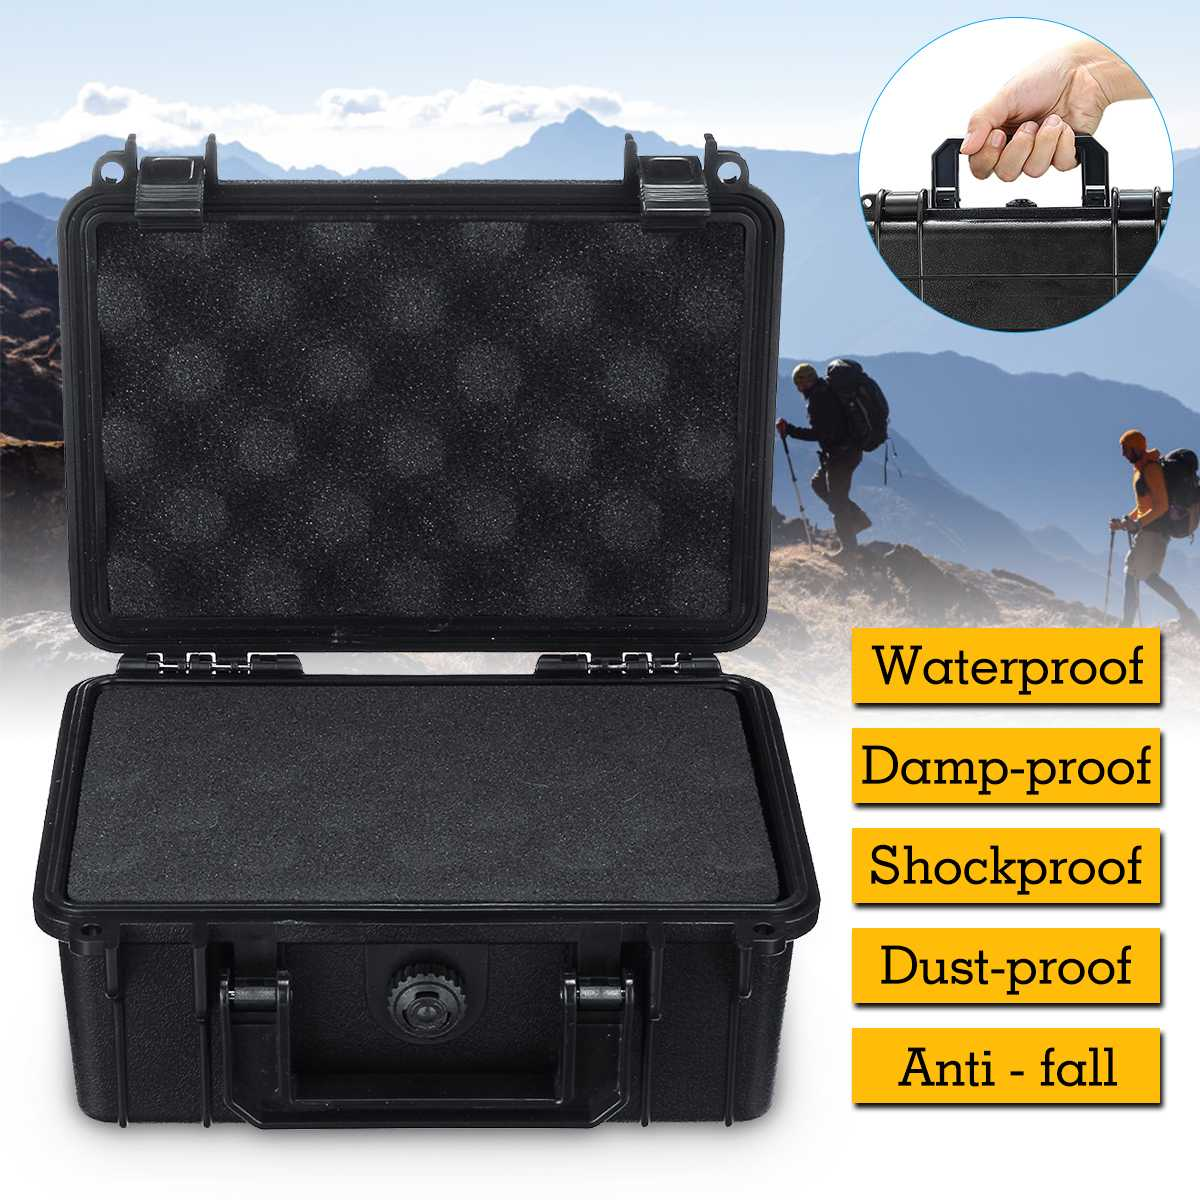 Portable Safety Instrument Tool Box Waterproof Shockproof Storage Toolbox Sealed Tool Case Impact Resistant Suitcase With Foam